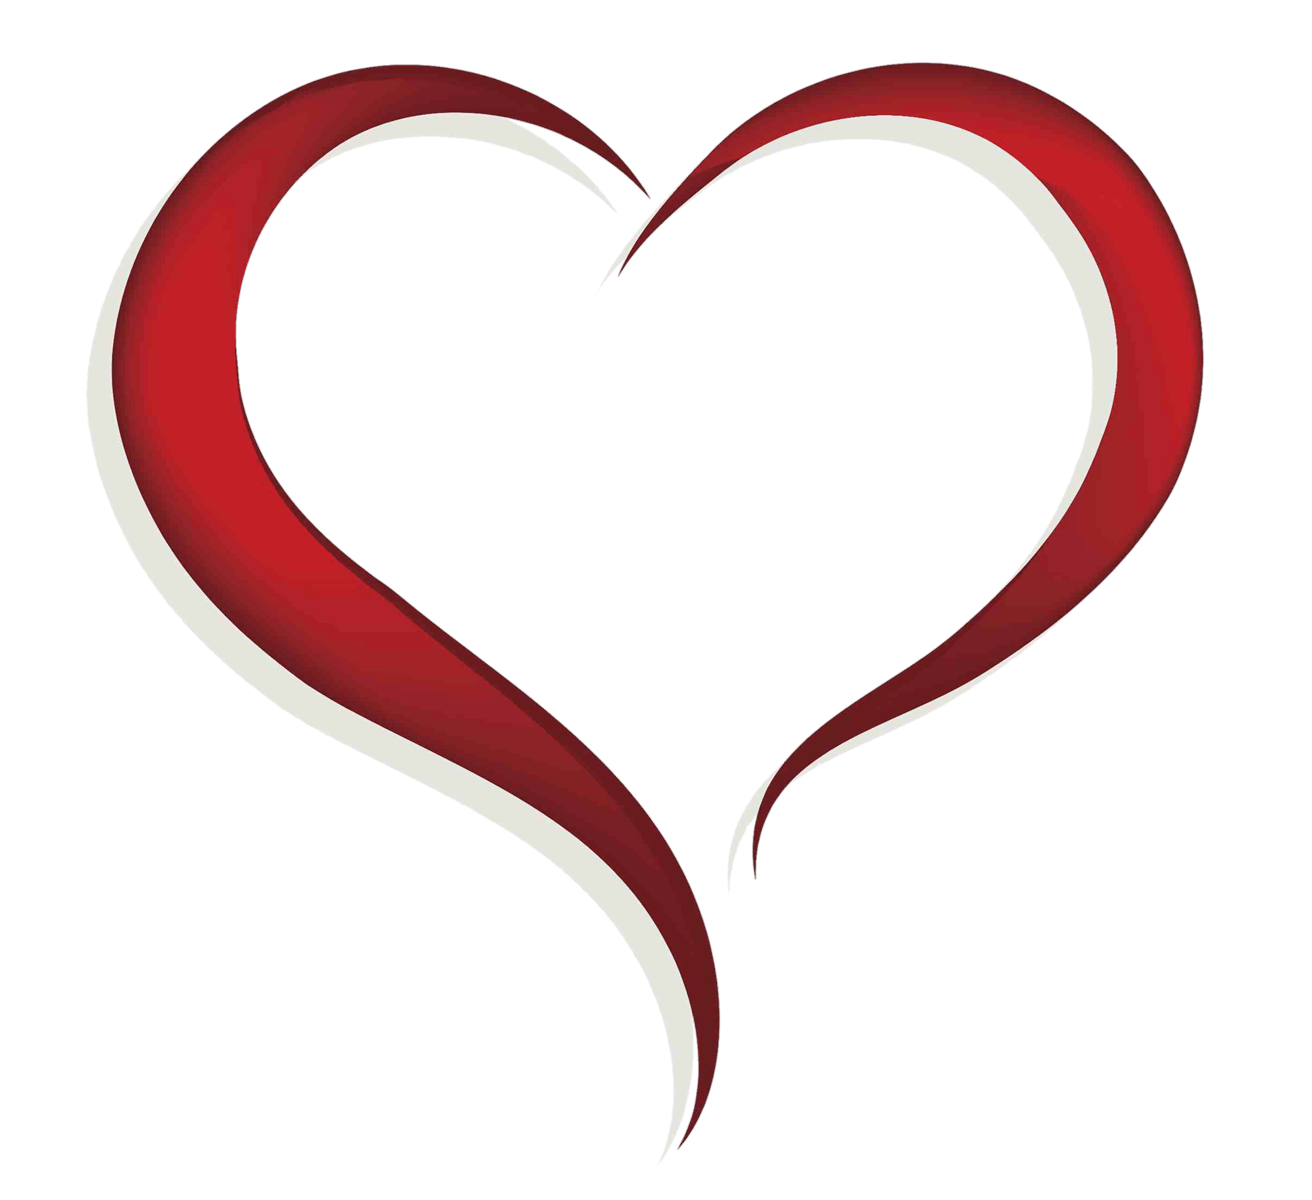 Real heart swelling cliparts. Hearts clipart school